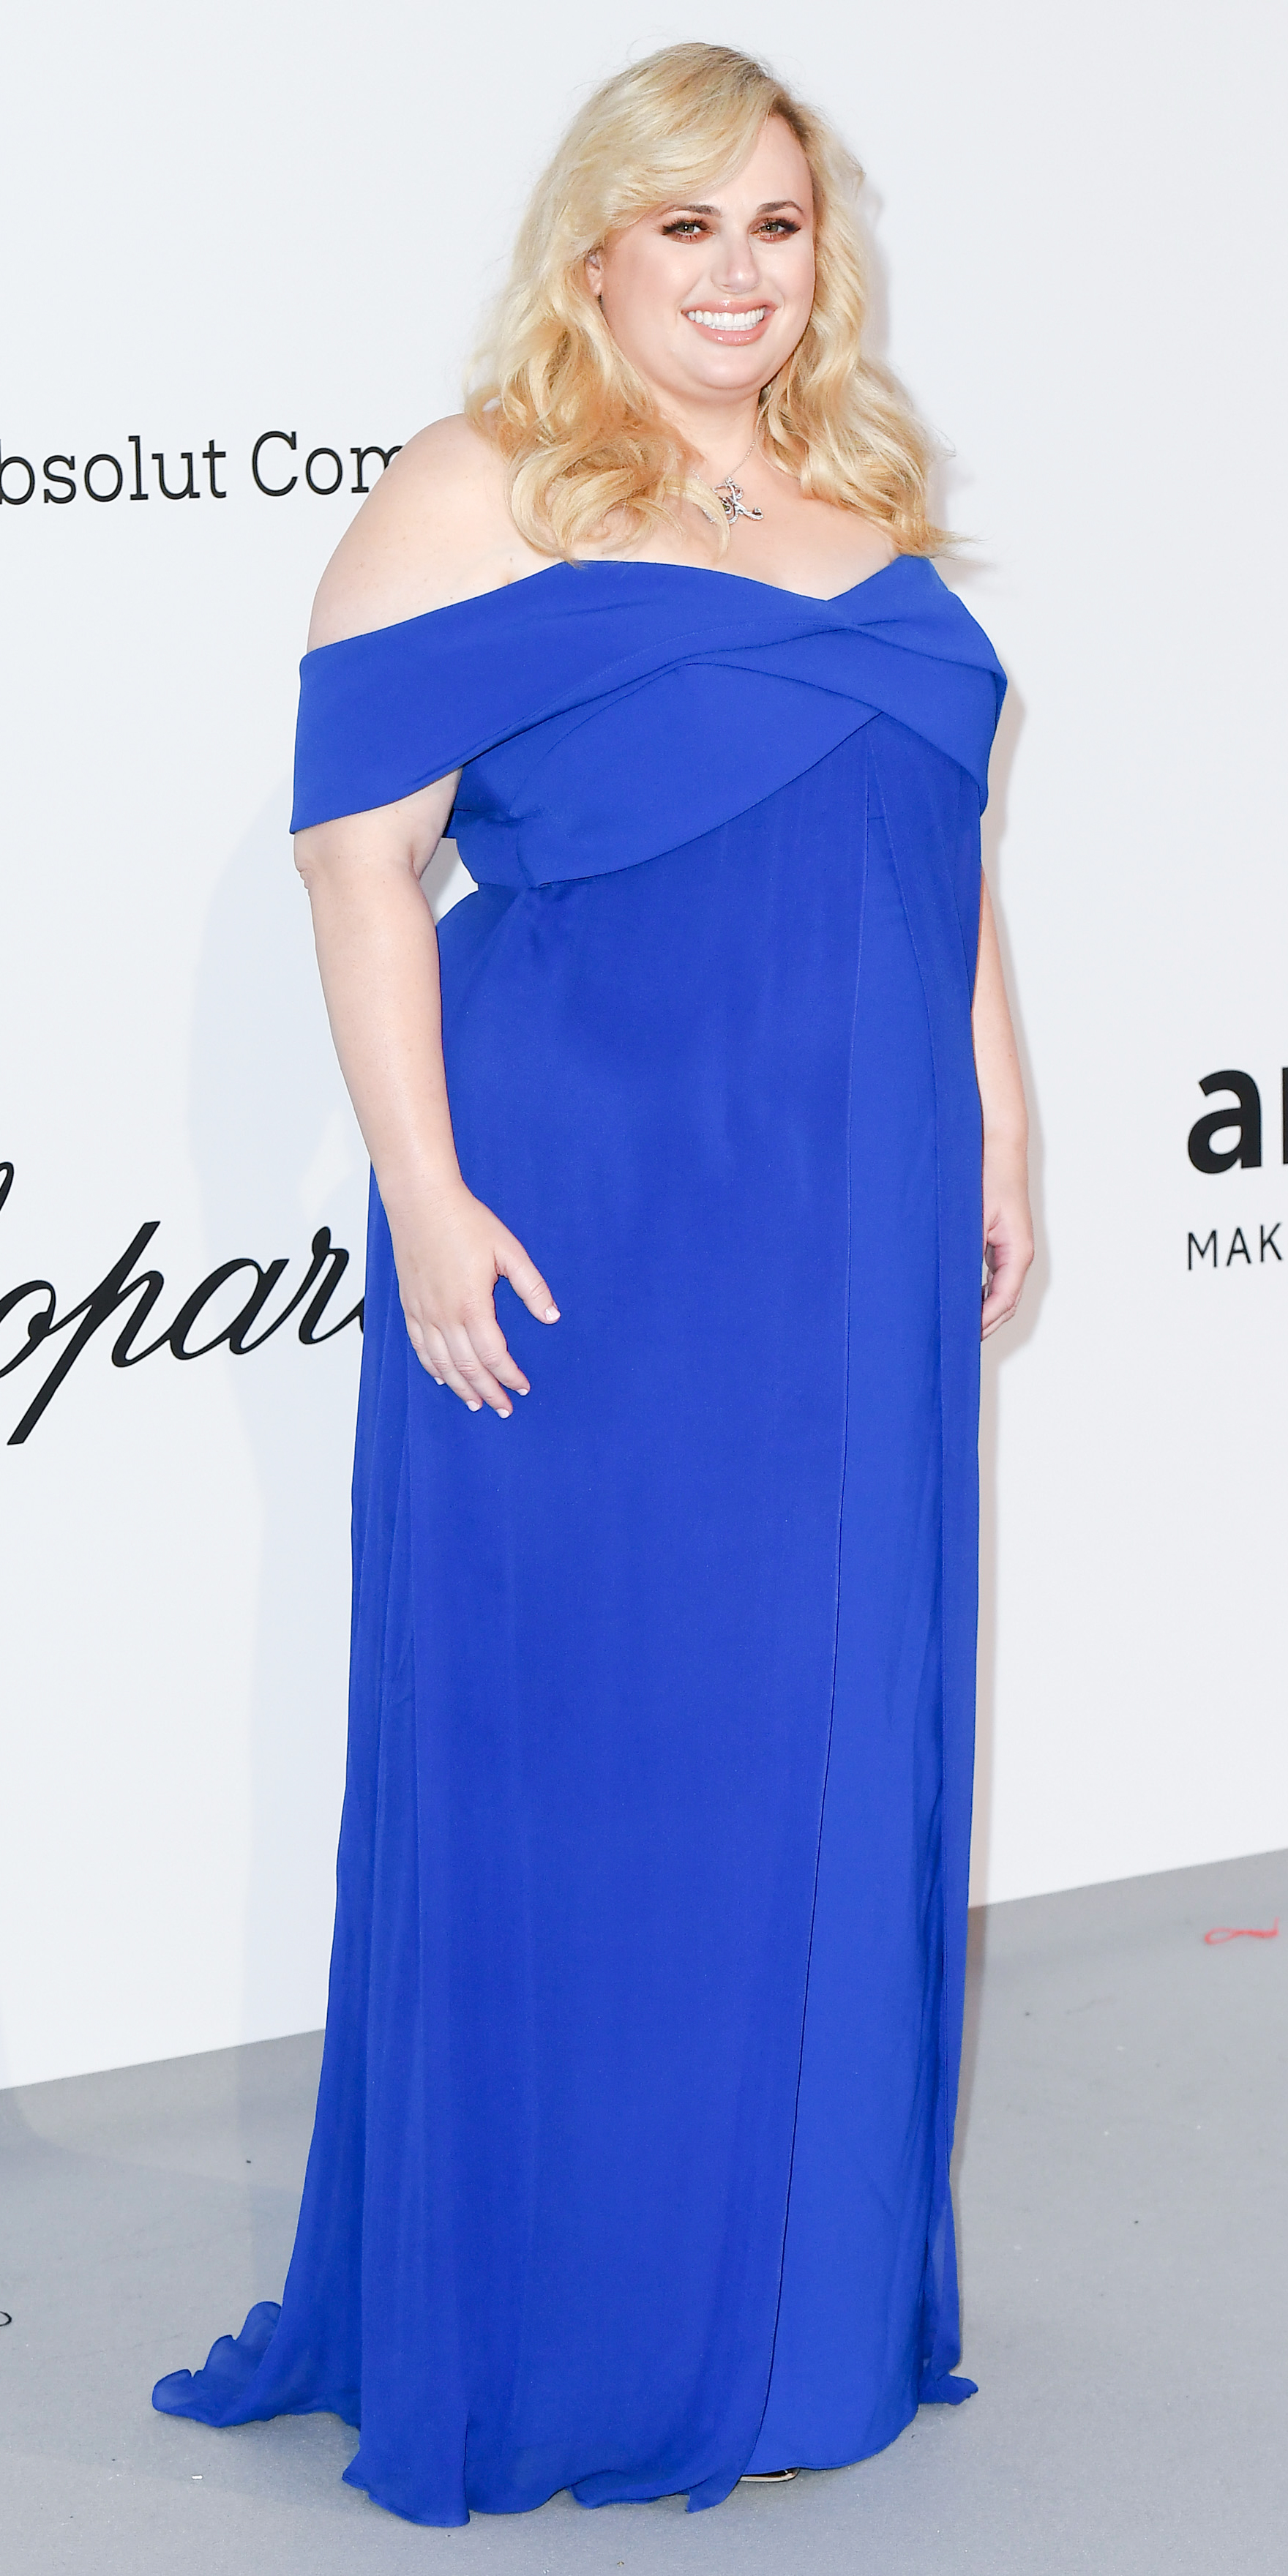 InStyle's Look of the Day picks for May 24, 2019 include Rebel Wilson, Kendall Jenner and Allison Williams.